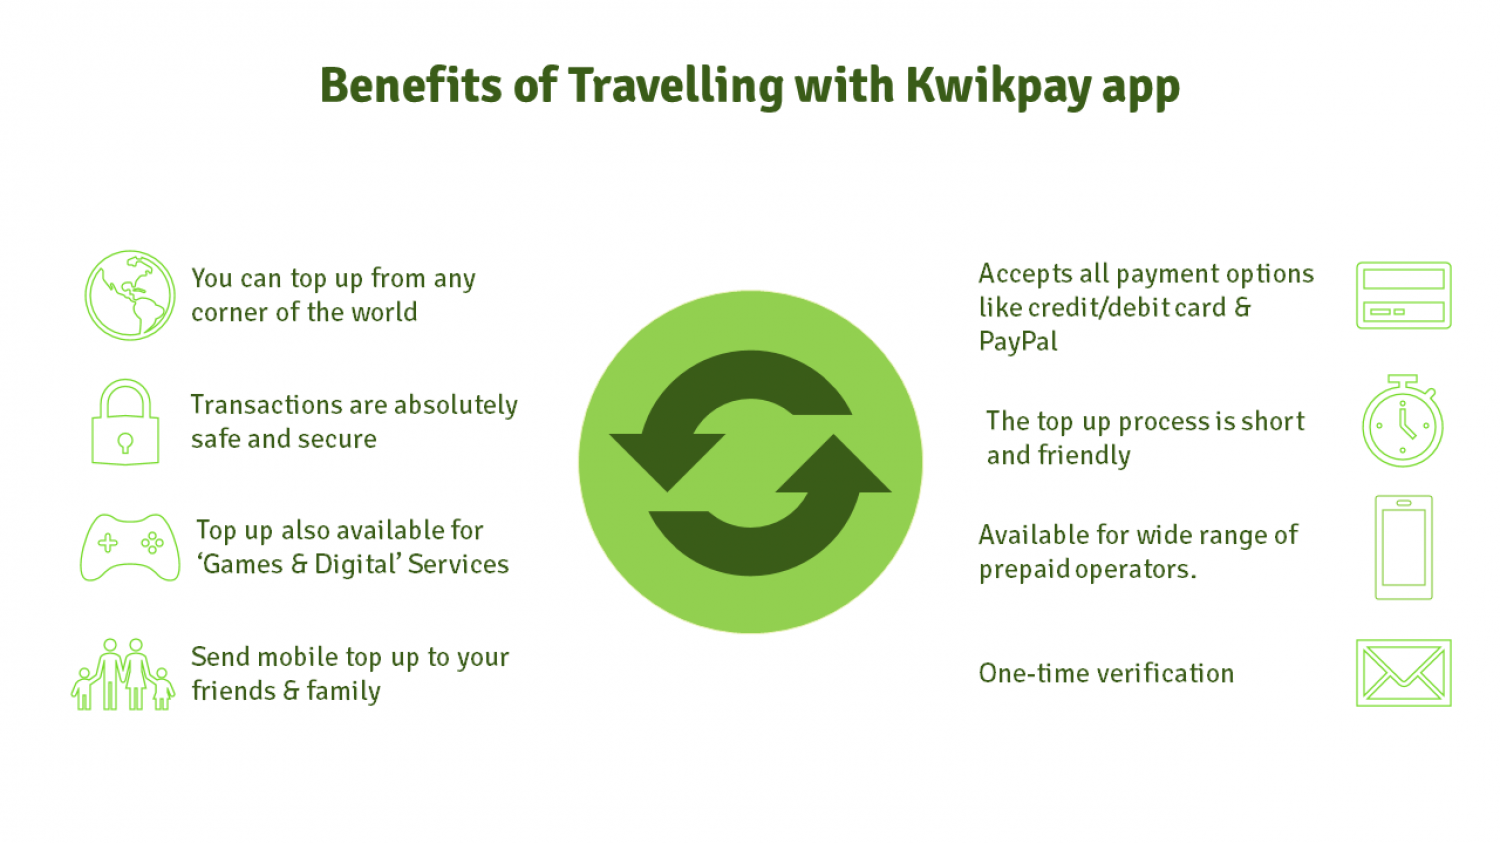 The benefits of travelling with Kwikpay app Infographic